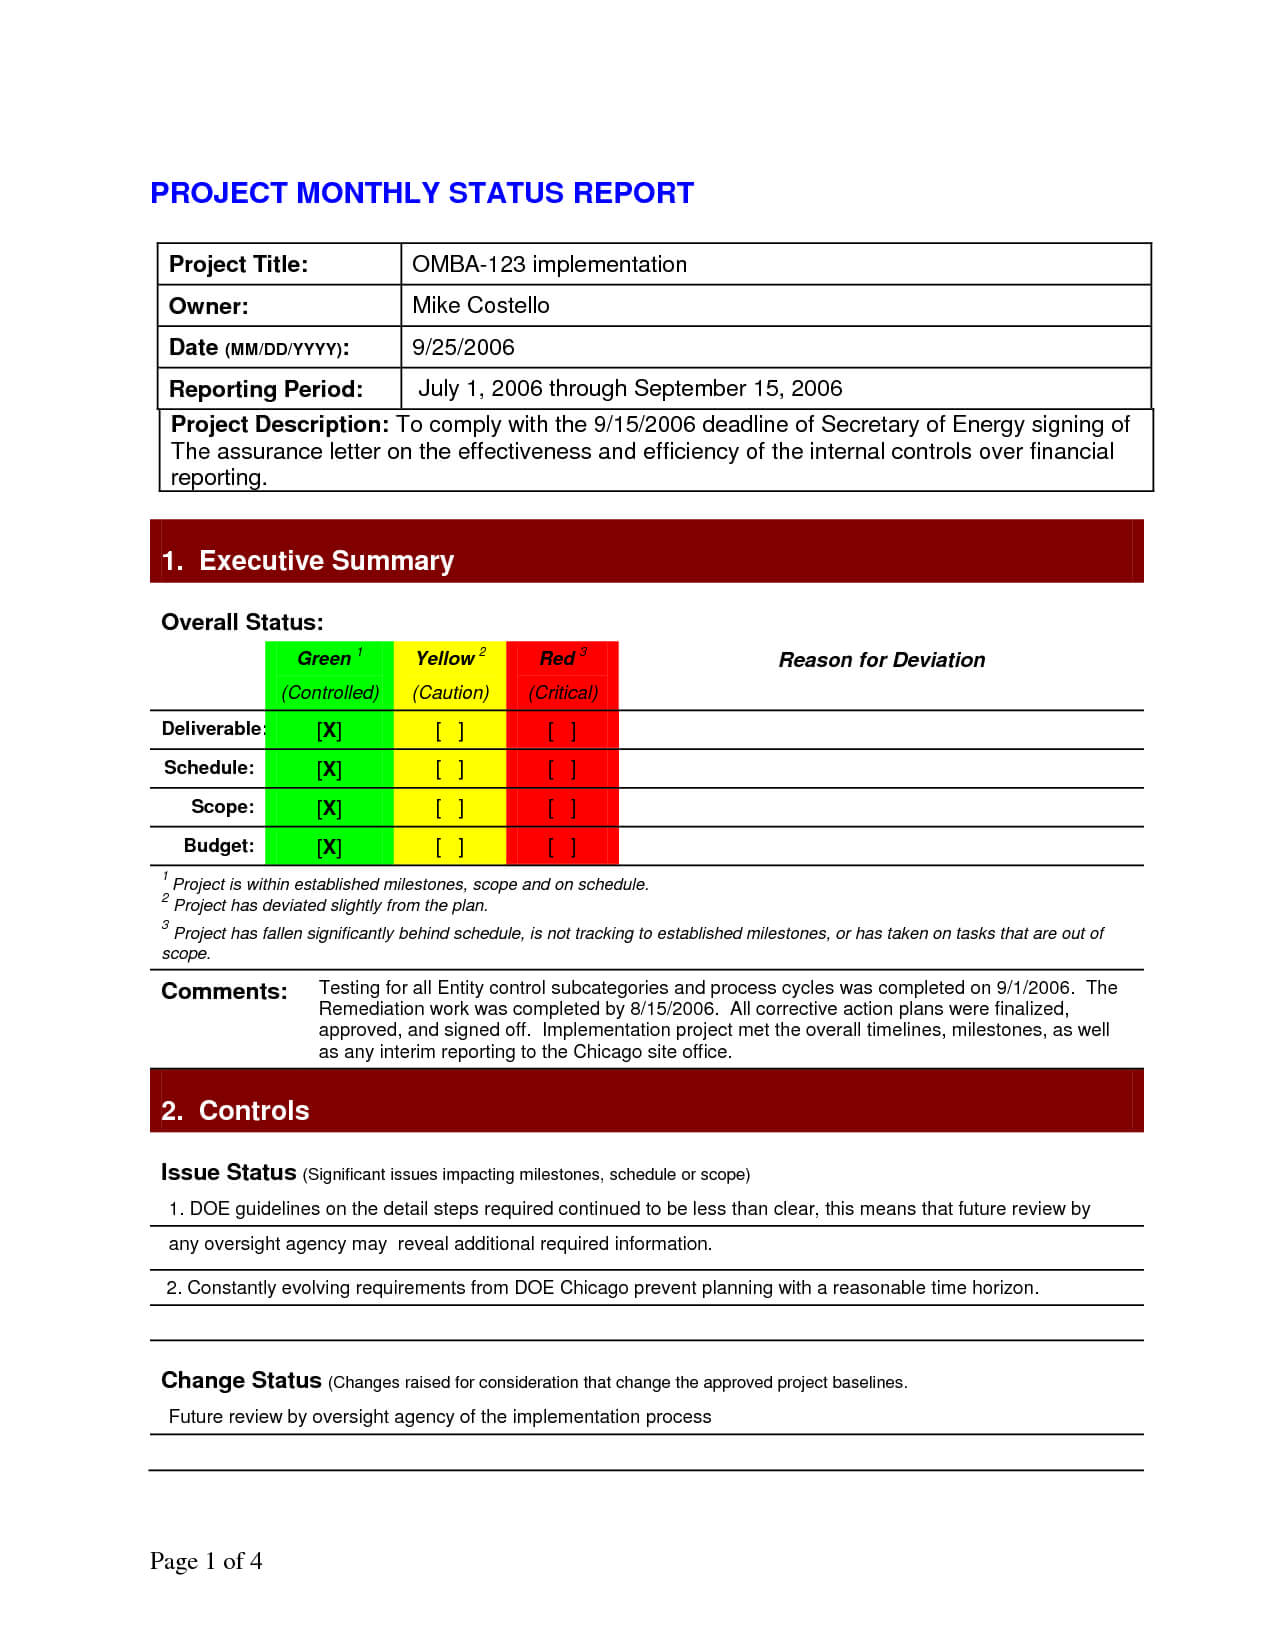 Pinlesedi Matlholwa On Templates | Progress Report intended for Project Weekly Status Report Template Excel